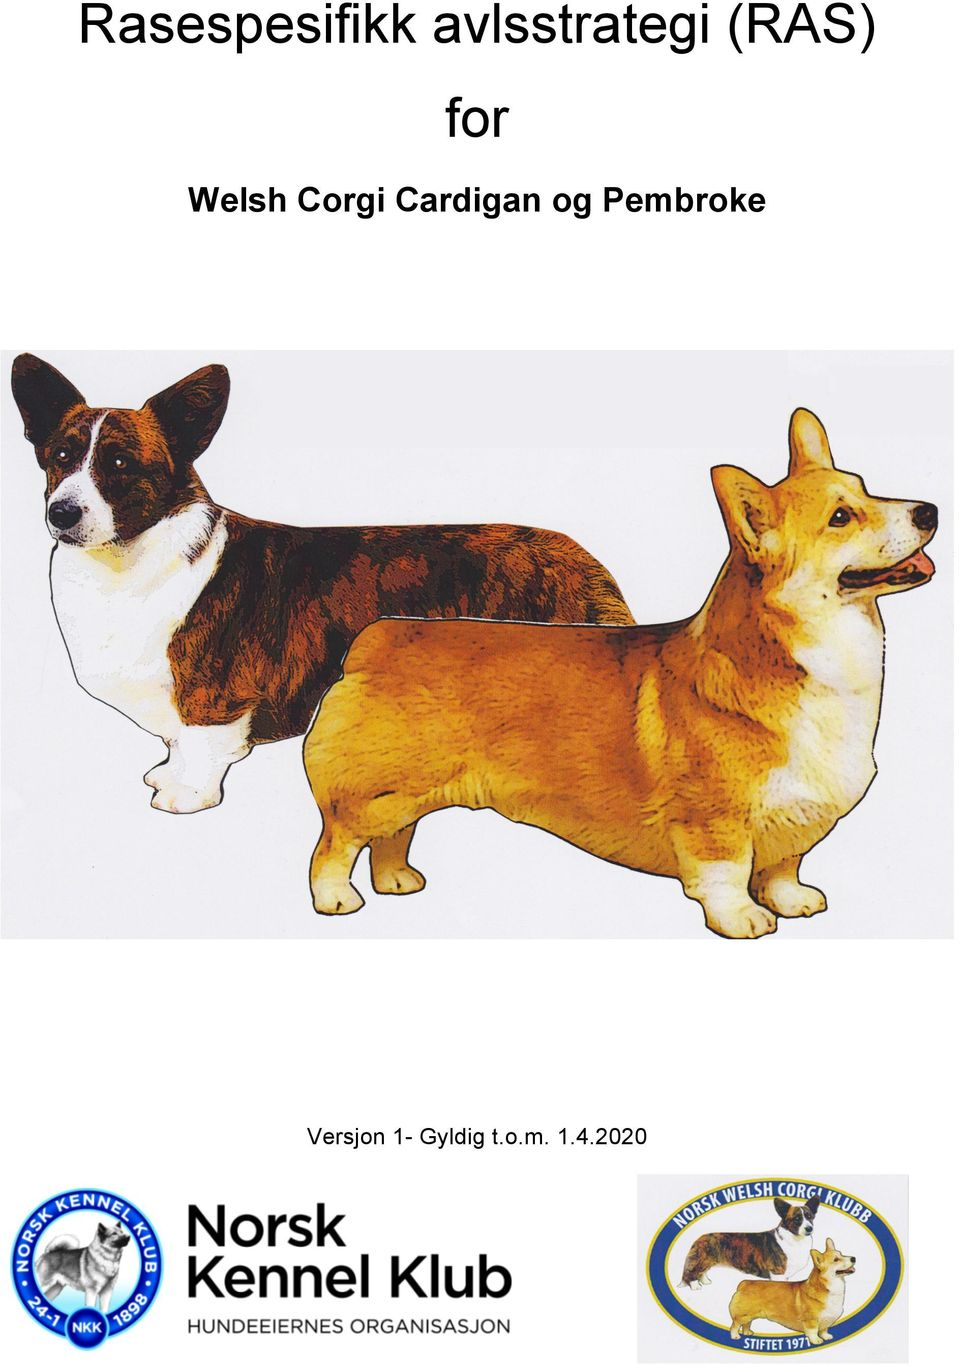 Welsh Corgi Cardigan og